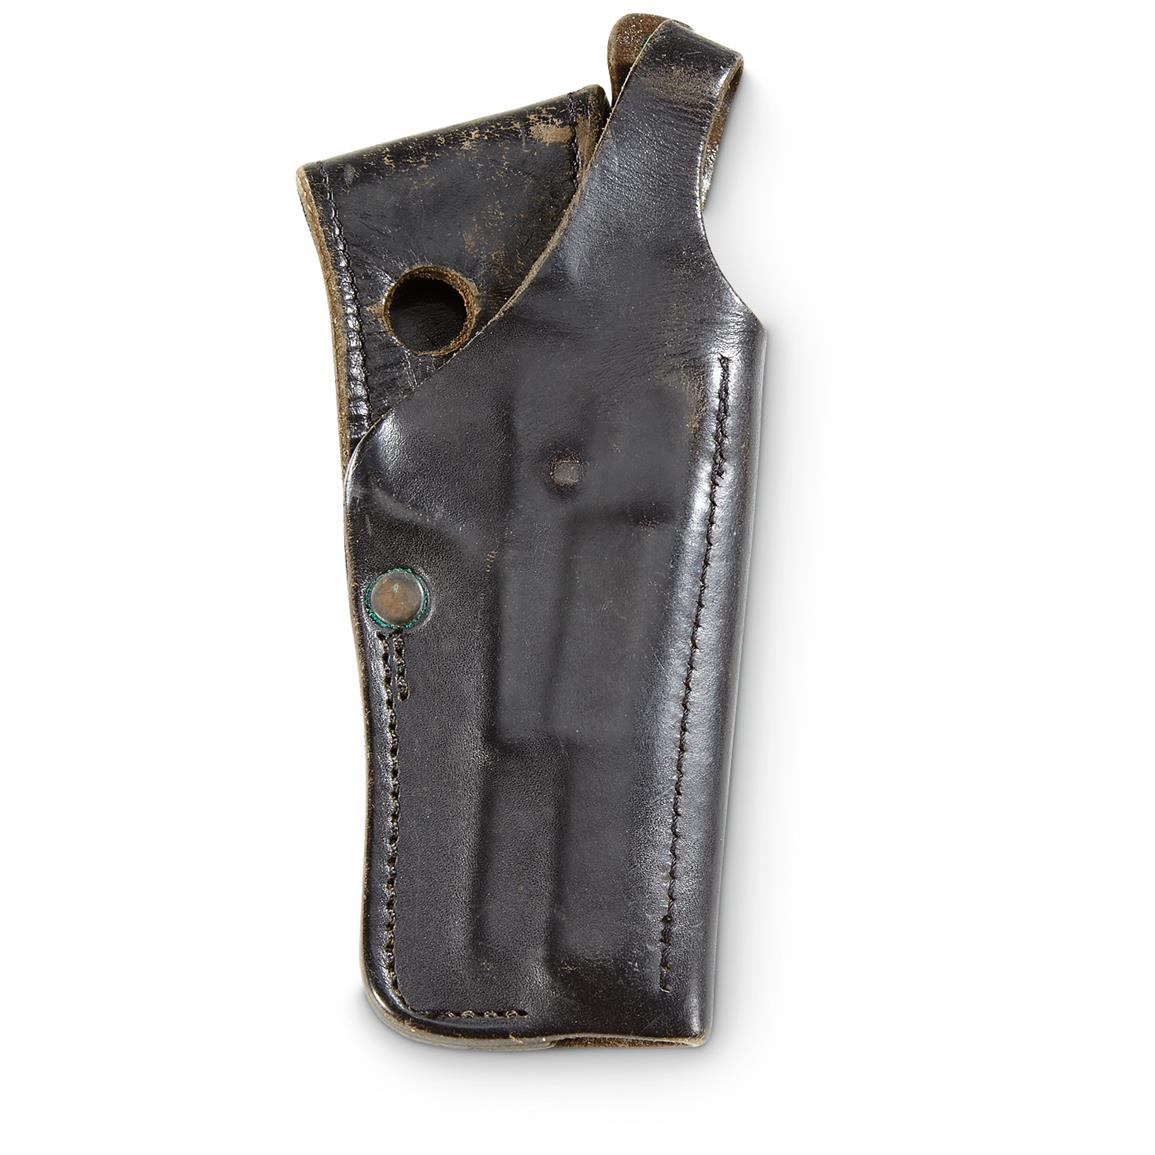 Used Belgian Military Surplus FN Holster, Black